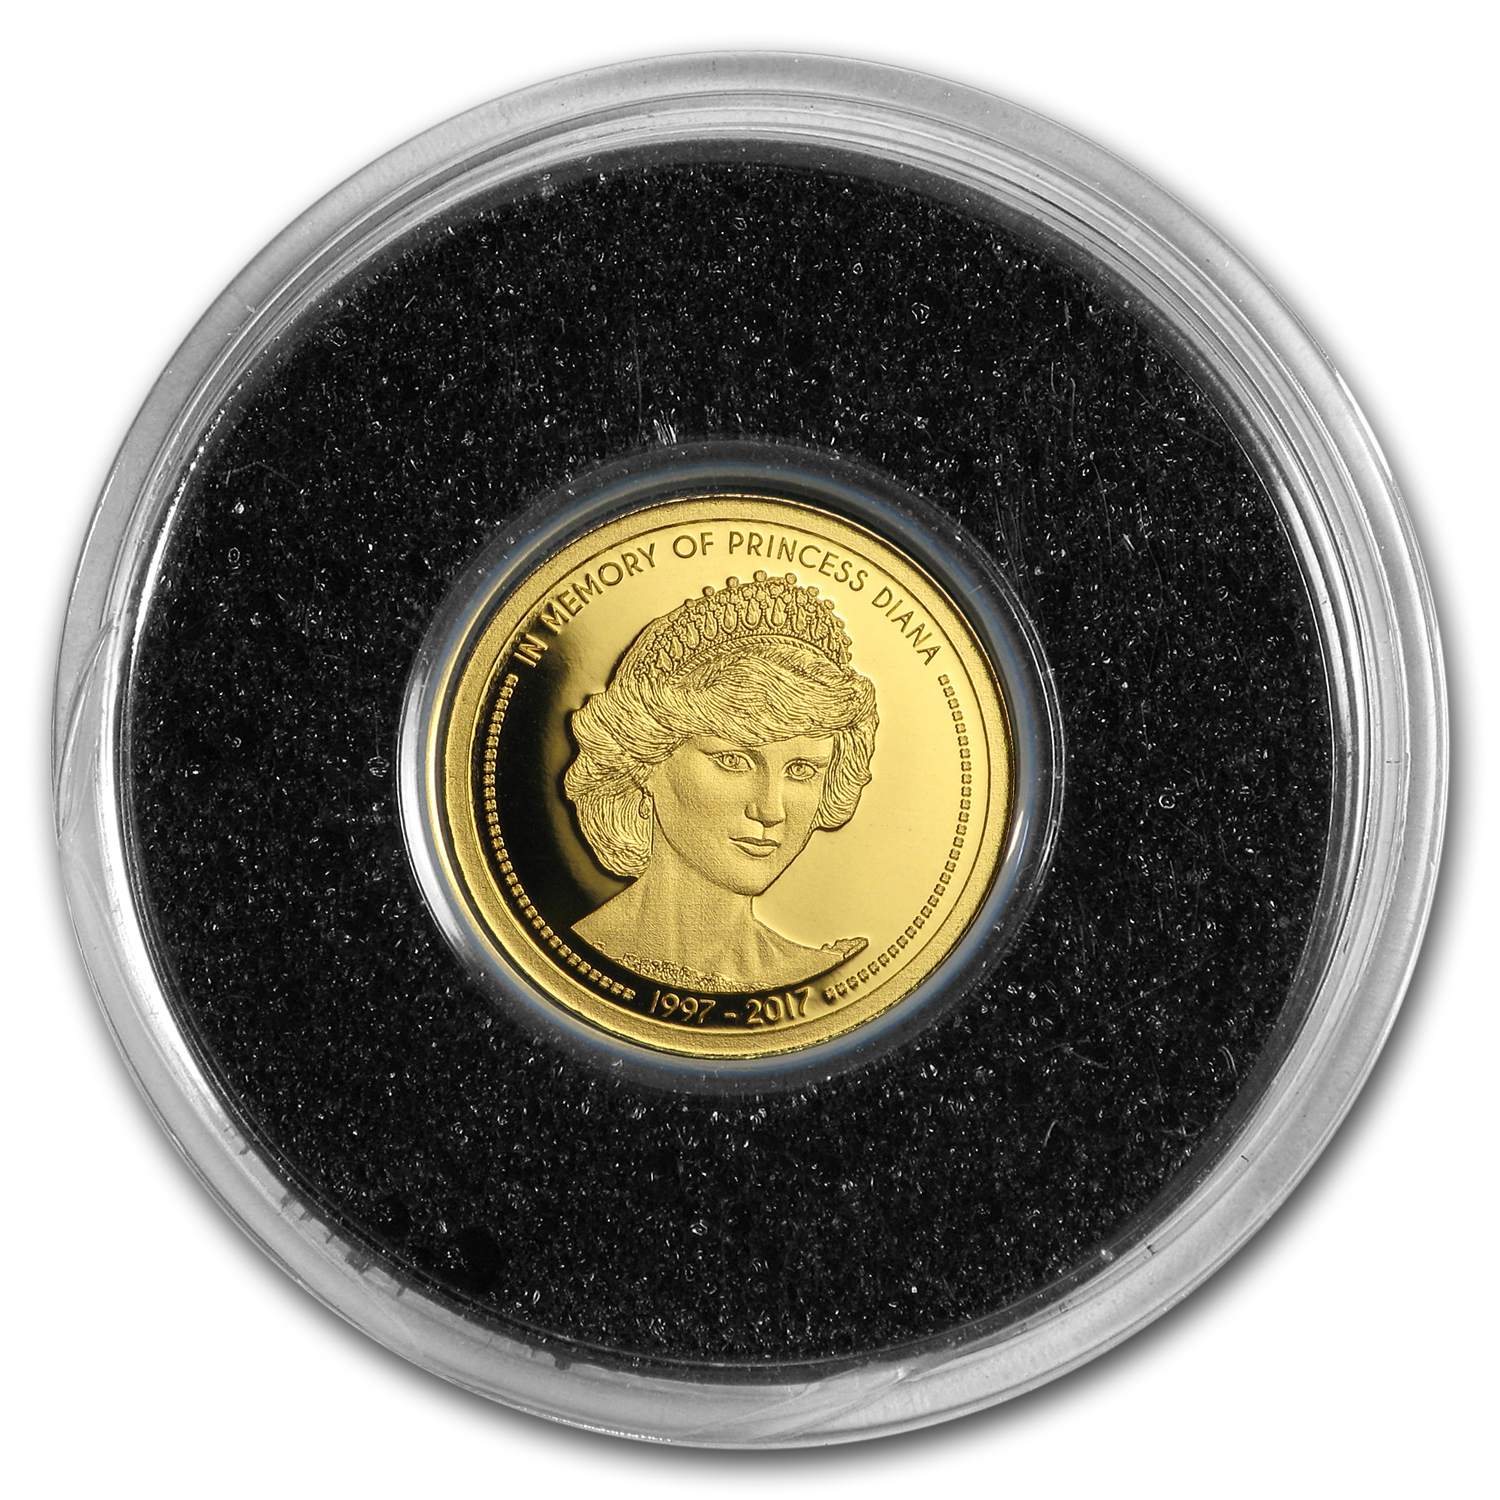 2017 Cook Islands 1/100 oz Gold In Memory of Princess Diana